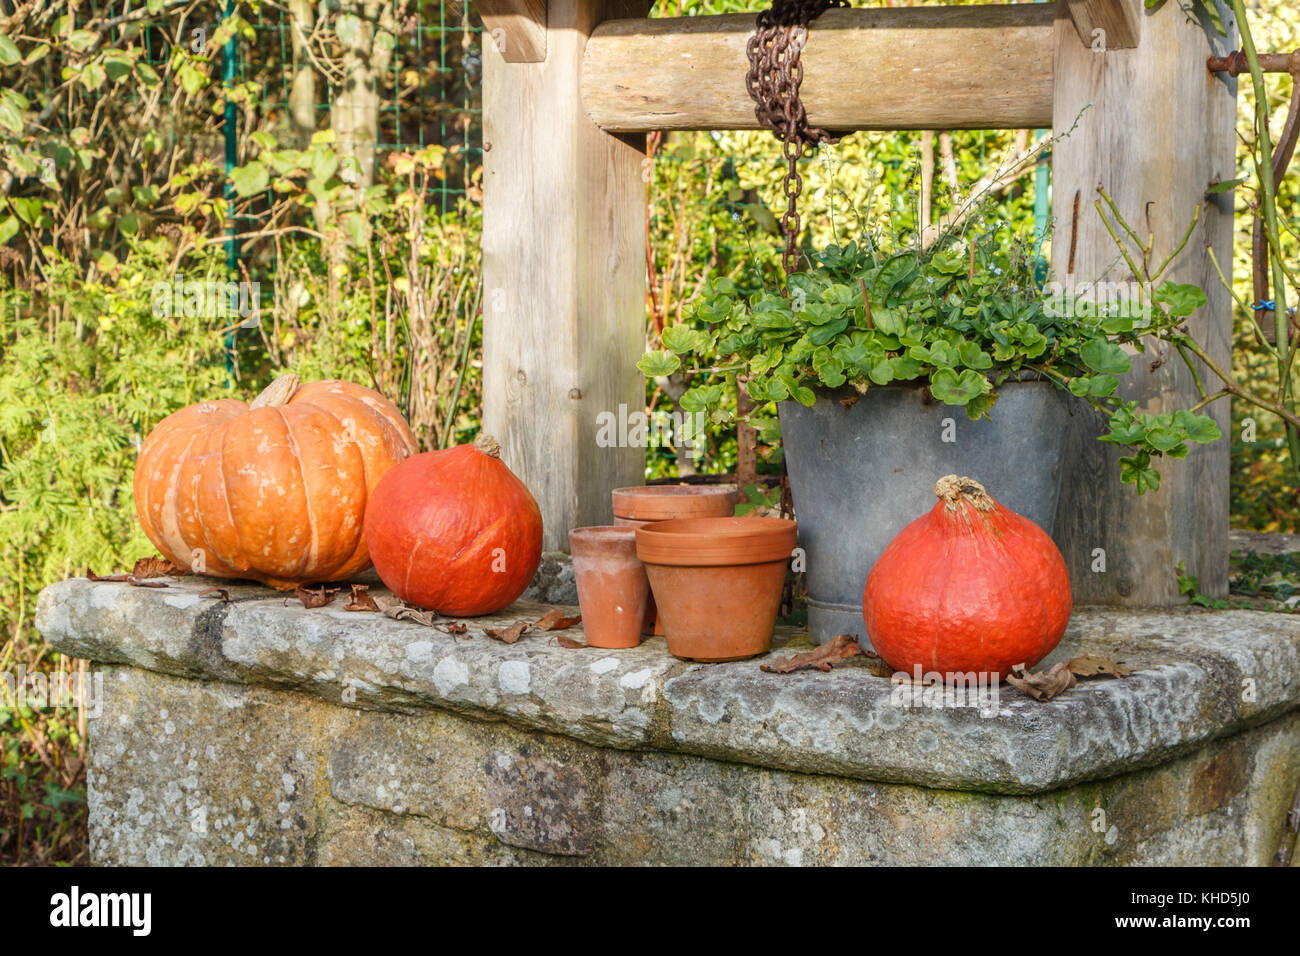 Pumpkins on the coping of a well after harvest during autumn - Stock Image